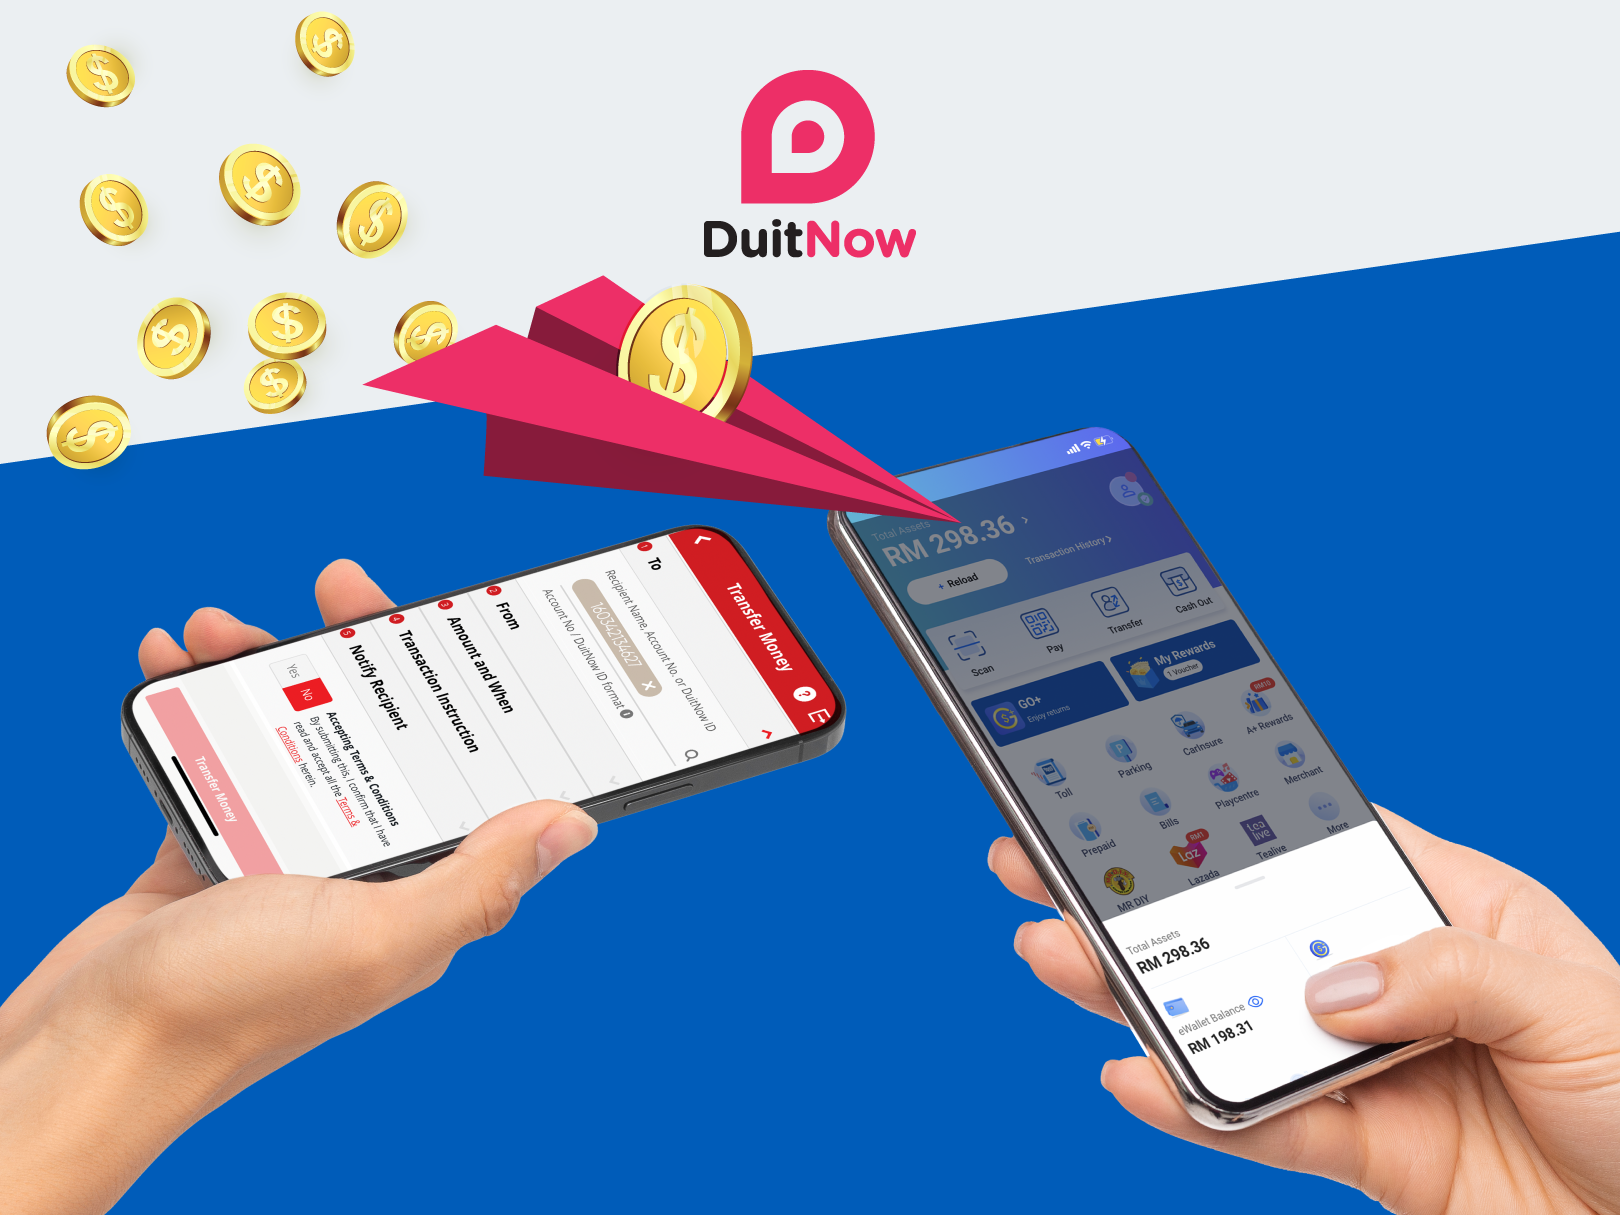 Activate DuitNow Transfer on your Touch 'n Go eWallet App